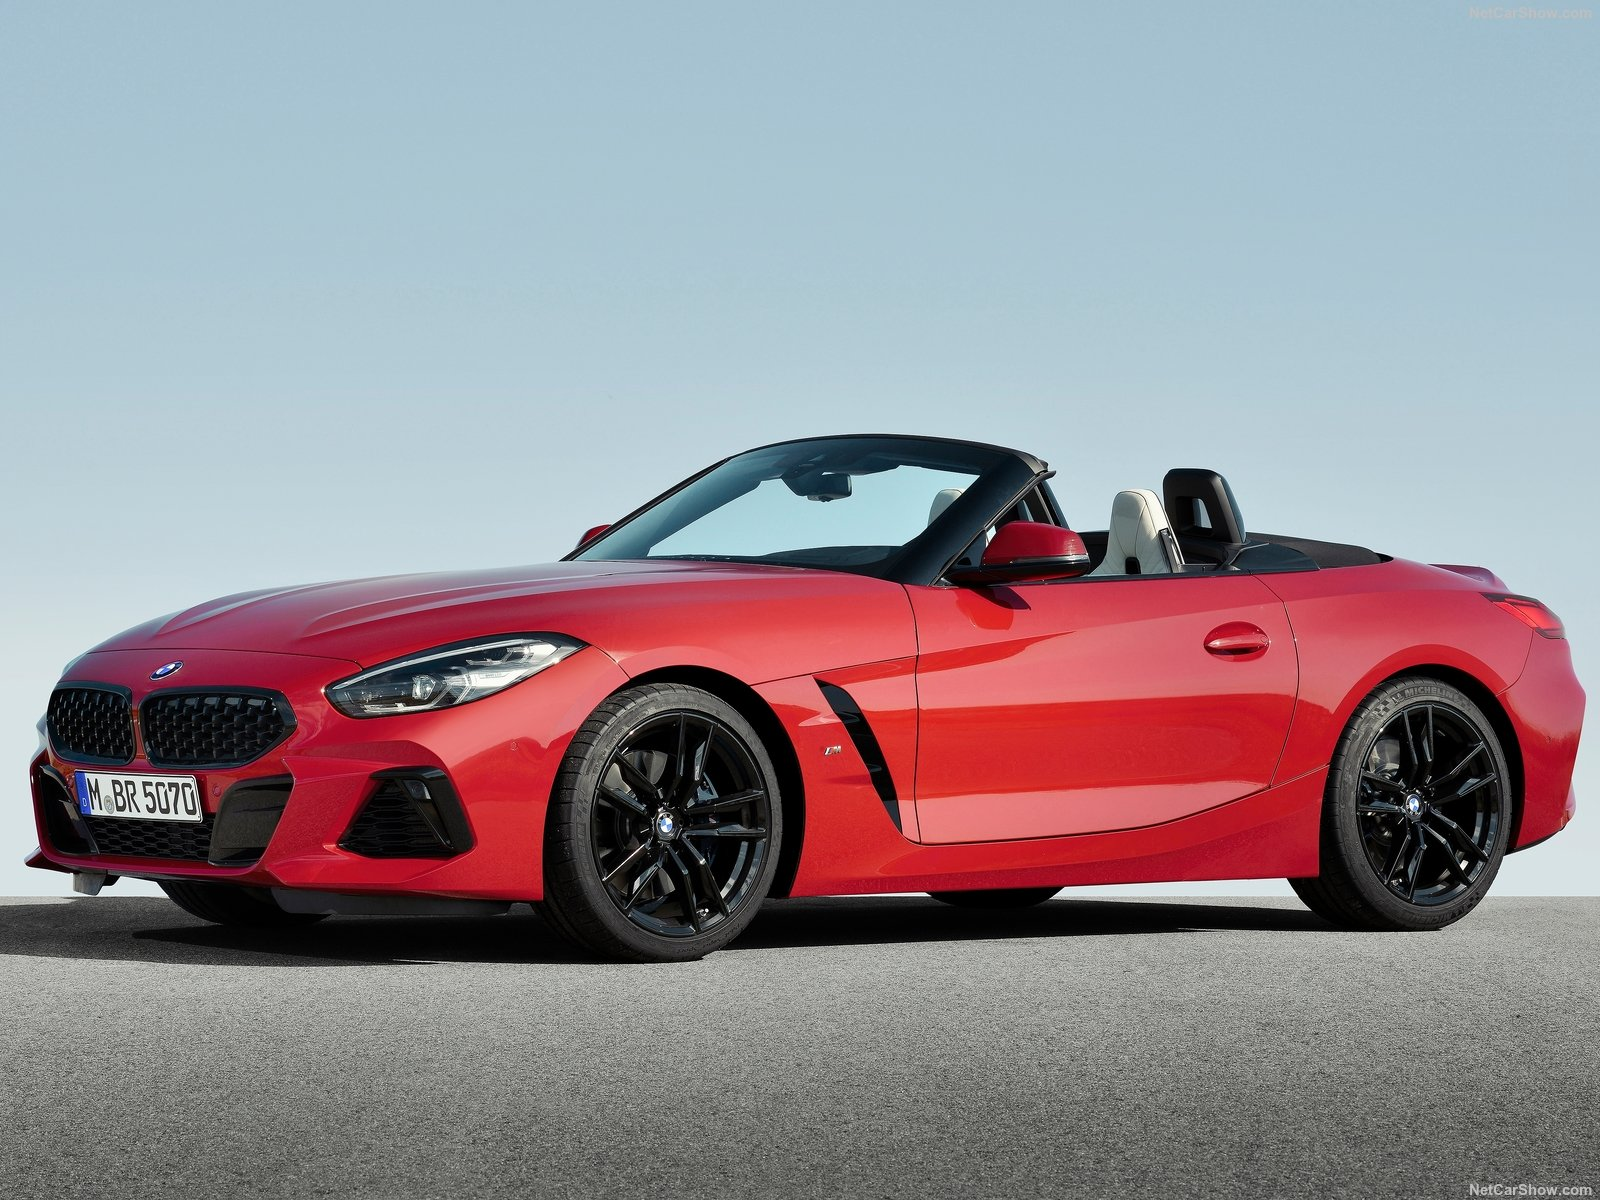 BMW-Z4_M40i_First_Edition-2019-1600-02